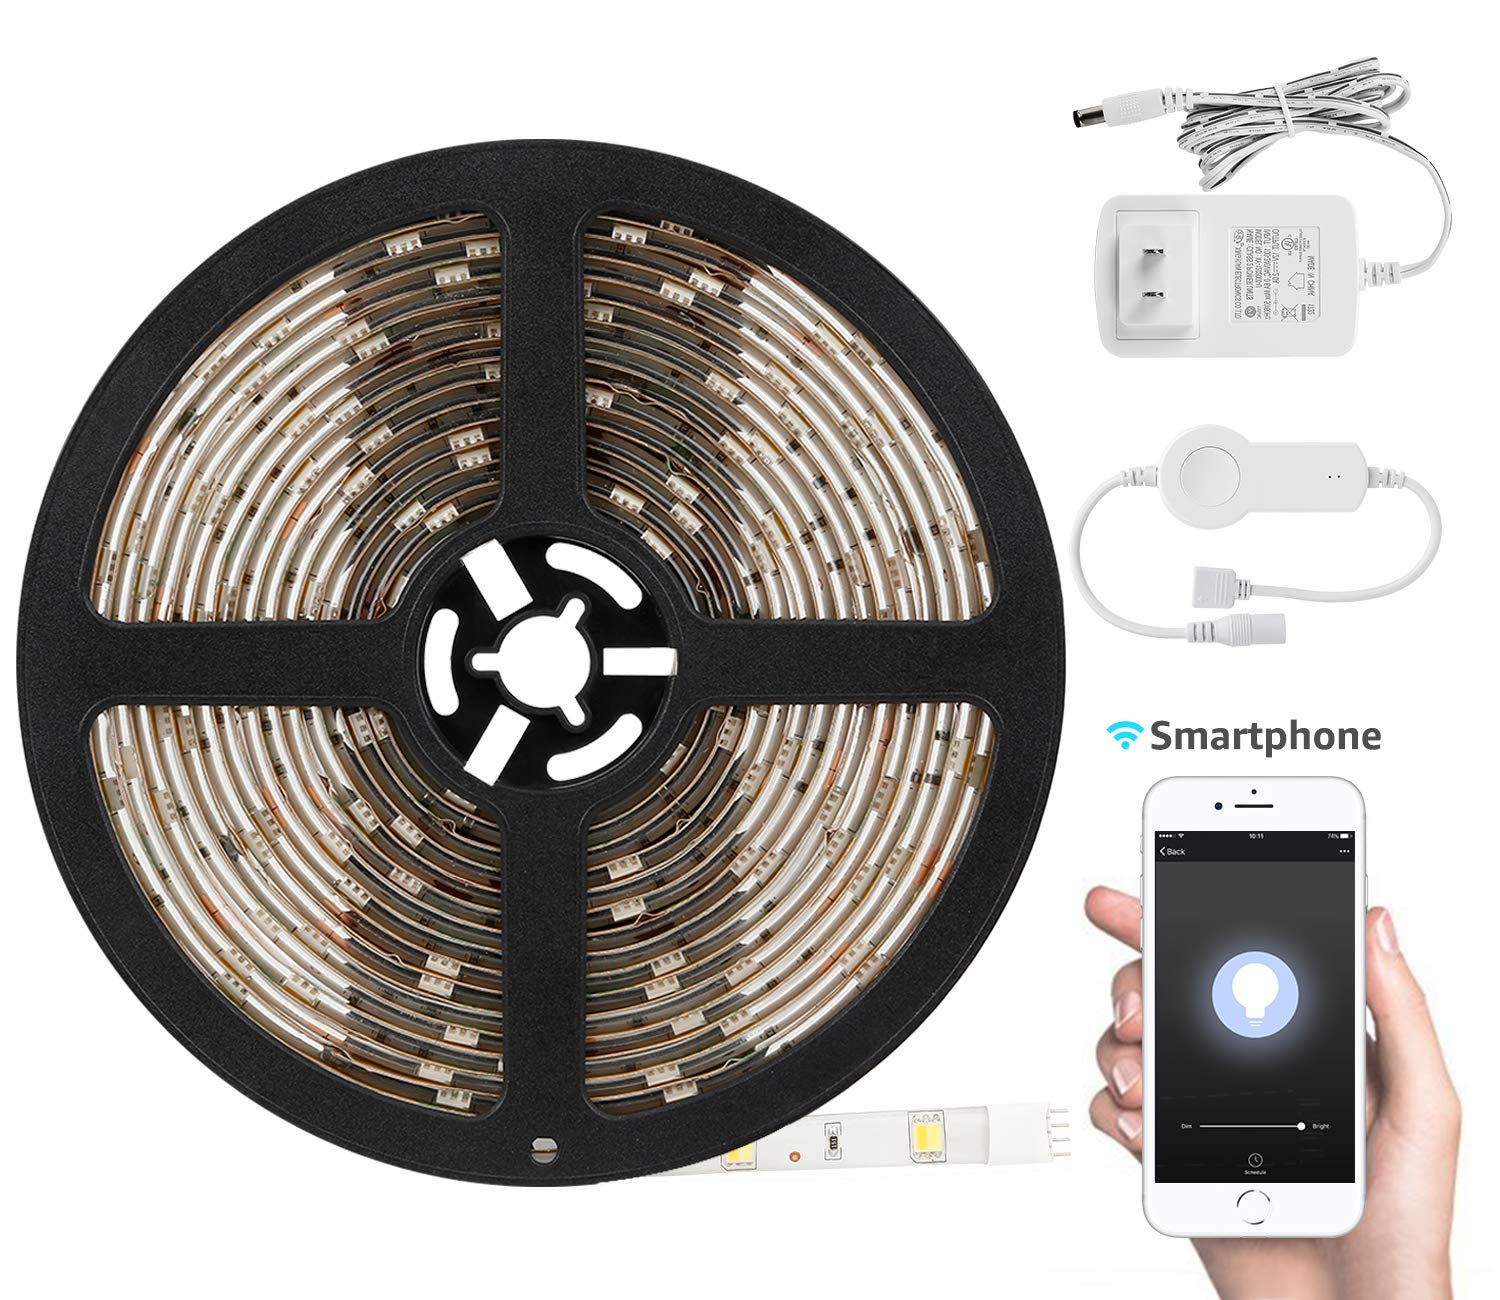 TORCHSTAR 16.4ft Led Strip Light Compatible with Alexa, WiFi Wireless Smart Phone App, Flexible 3000K Warm White 36W Lighting Kit, IP65 Waterproof, UL Listed 12V Power Supply in Party & Kitchen